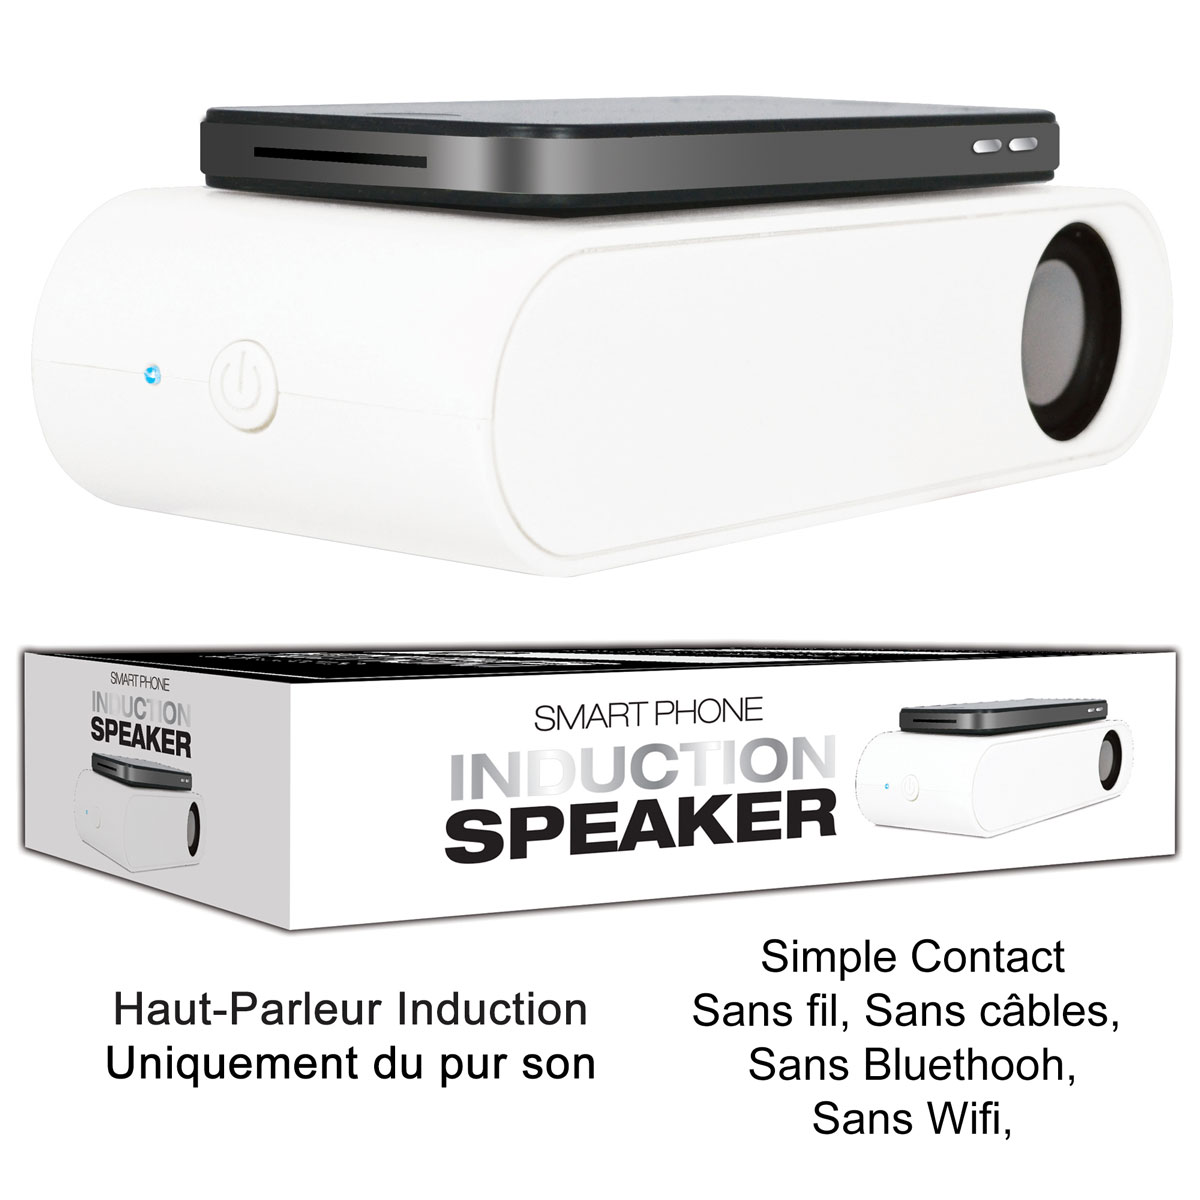 Speaker Induction<br>Smartphone Déclinais